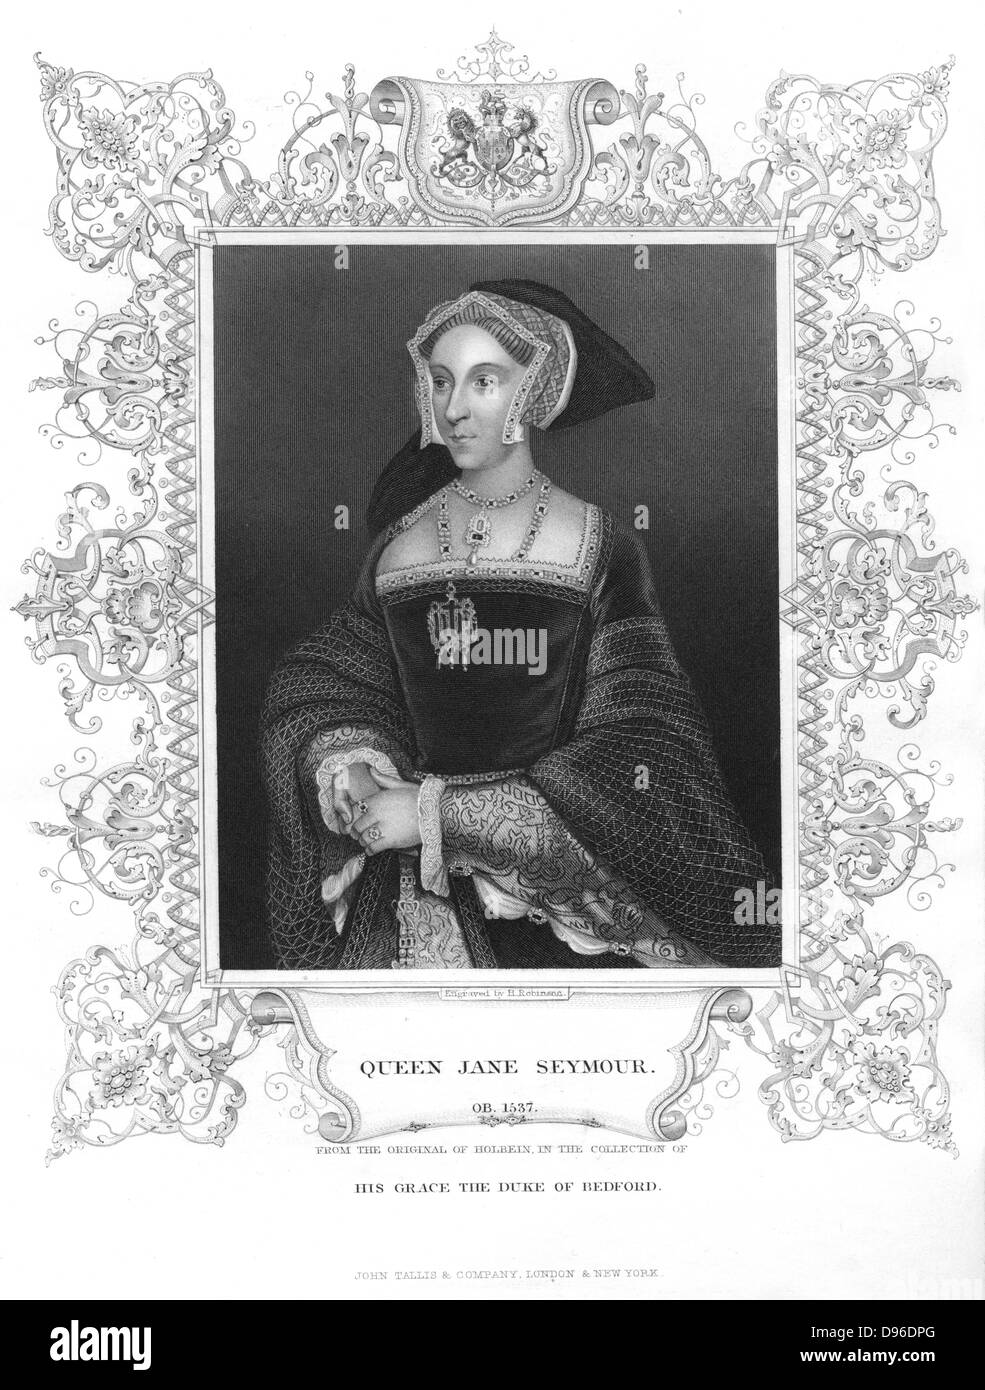 Jane Seymour (1509-1537) queen of England, third wife of Henry VIII. Mother of Edward VI, she died twelve days after - Stock Image